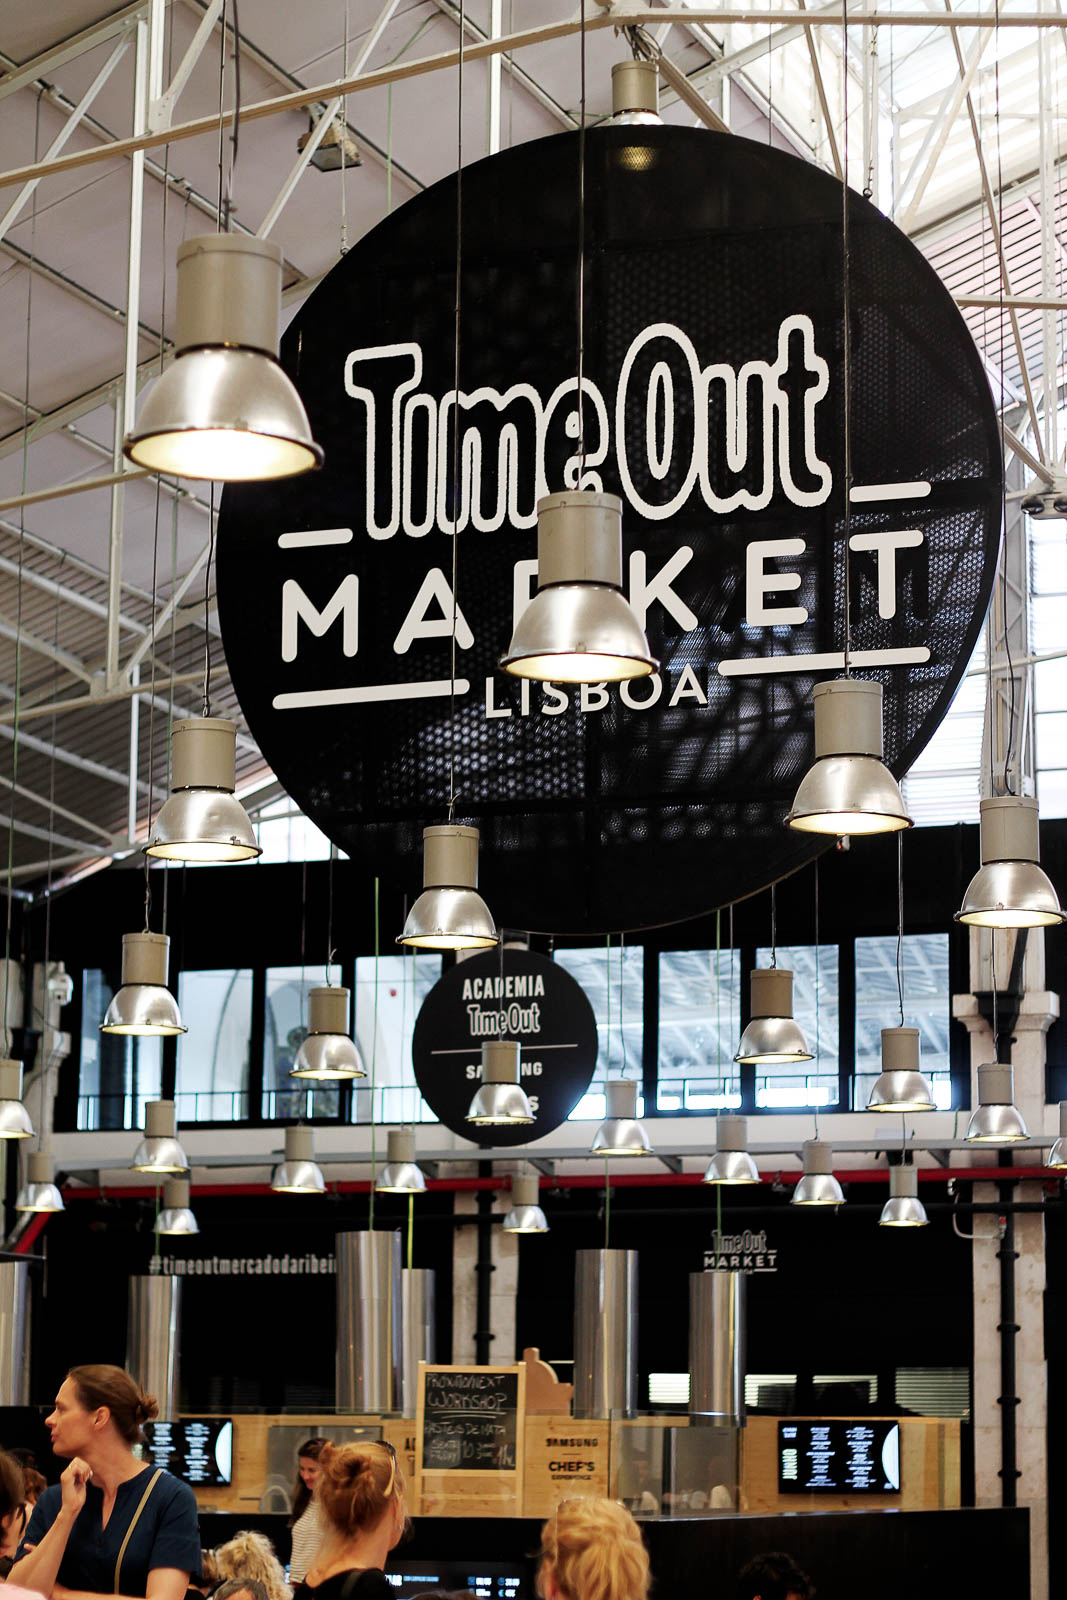 timeout market in lisboa